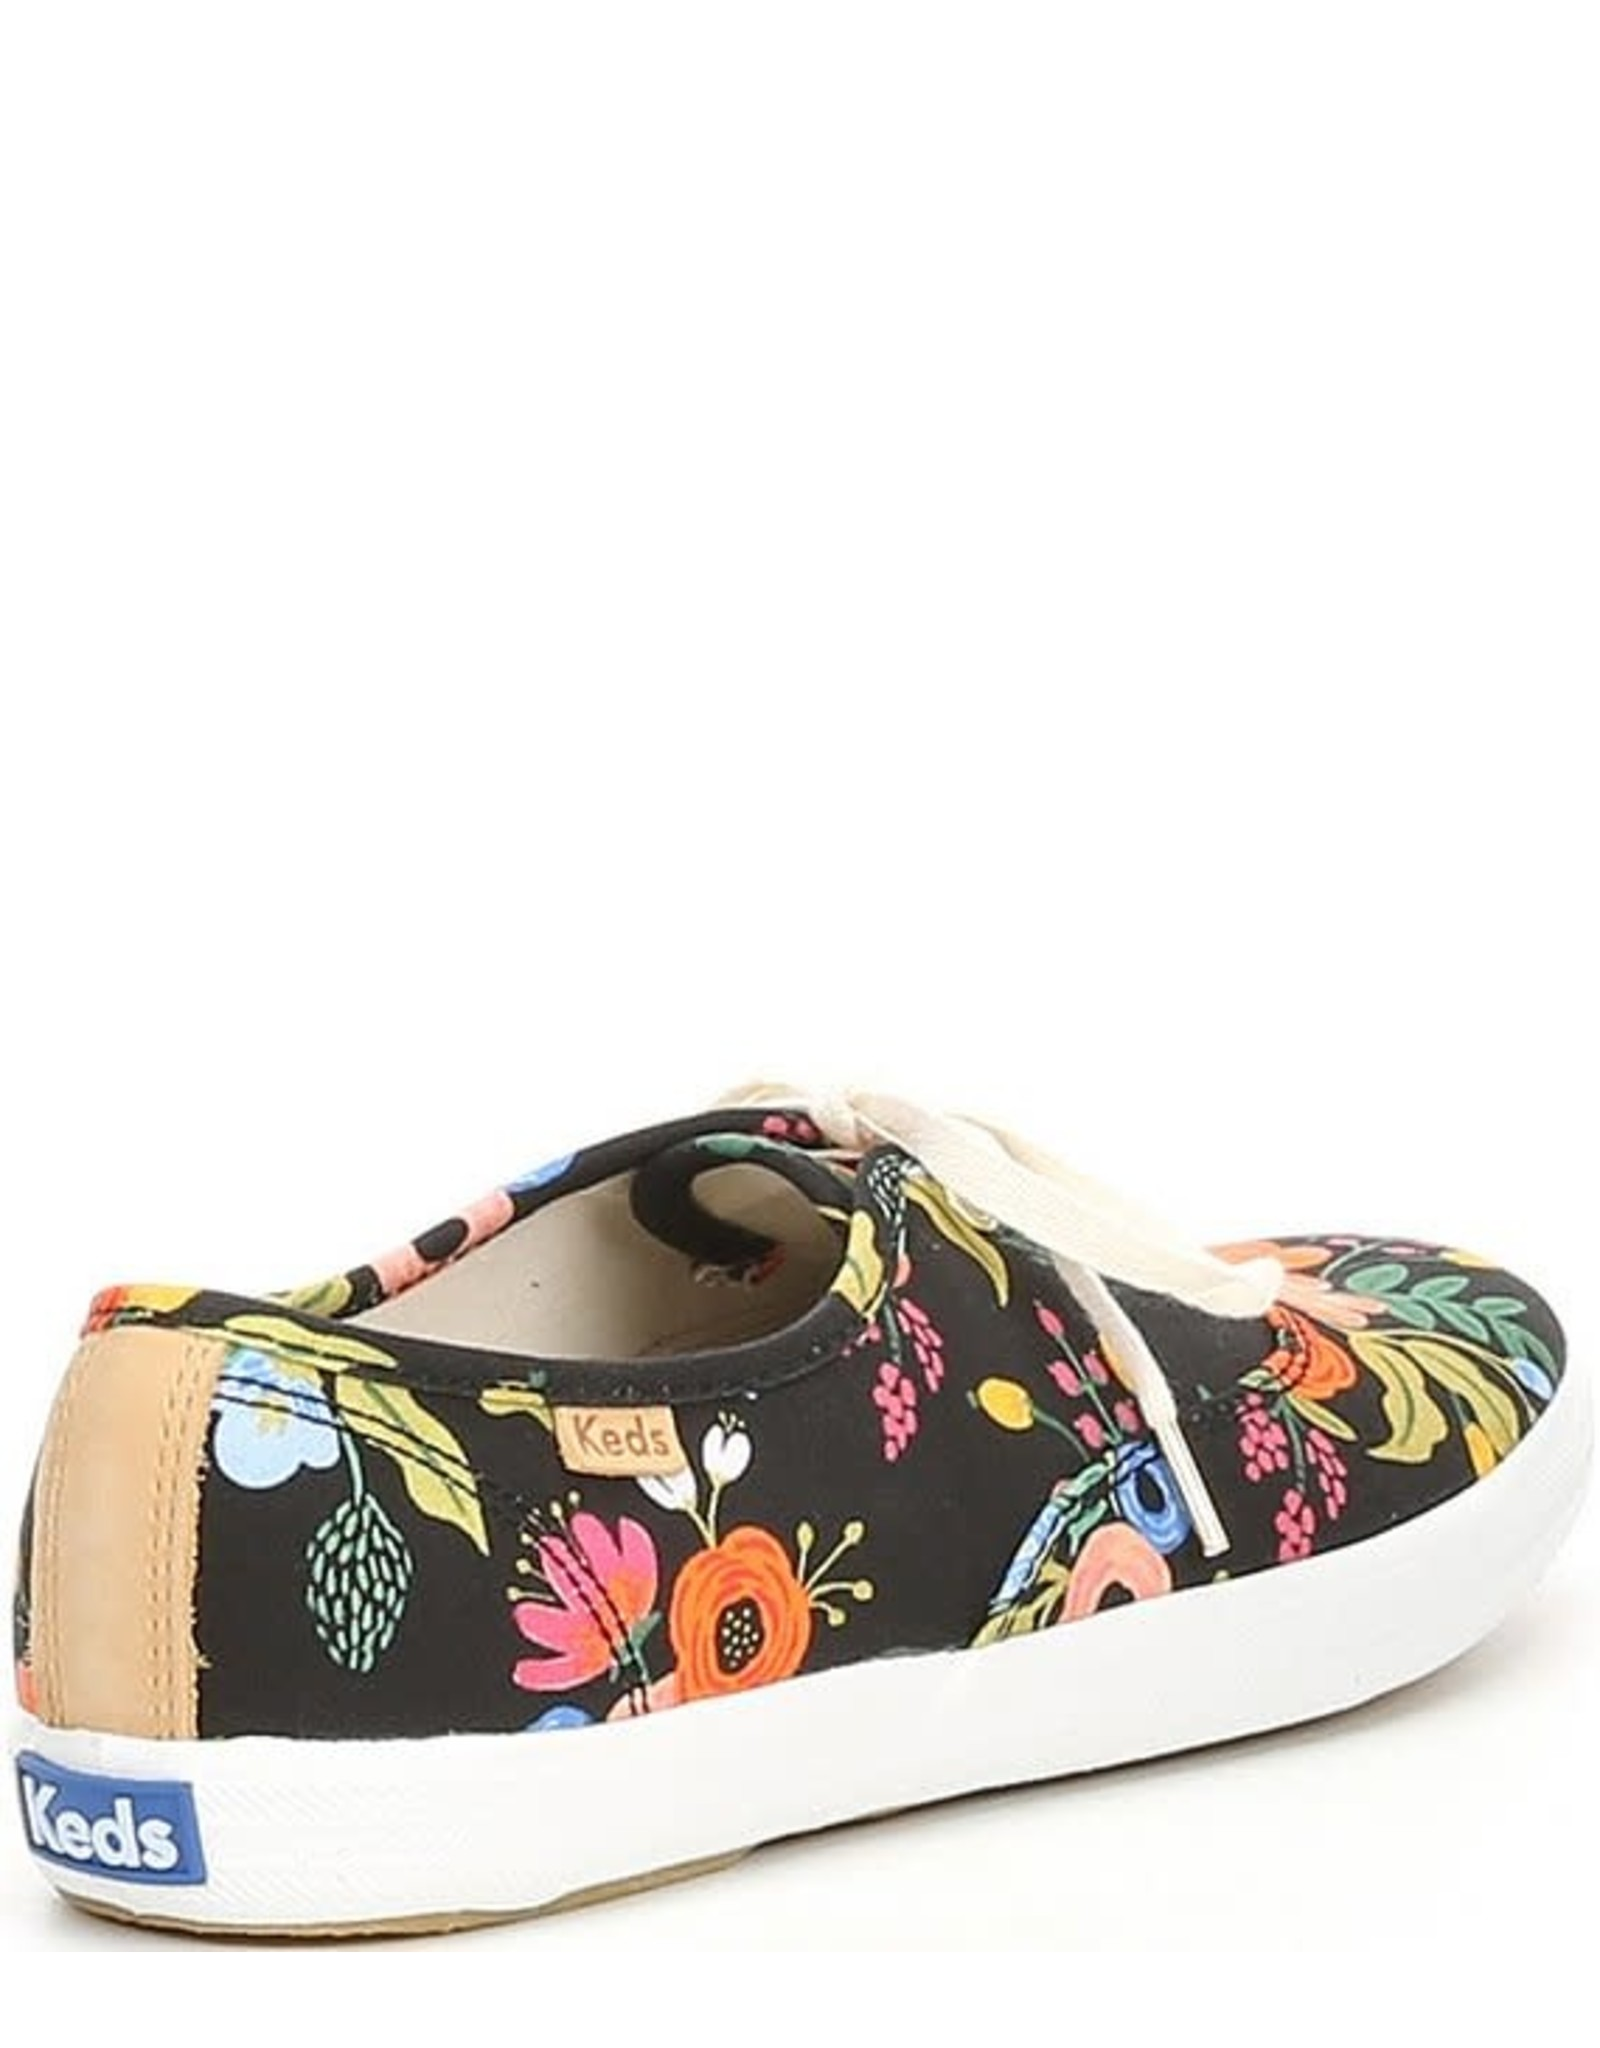 Keds x Rifle - Champ Floral Lace-Up